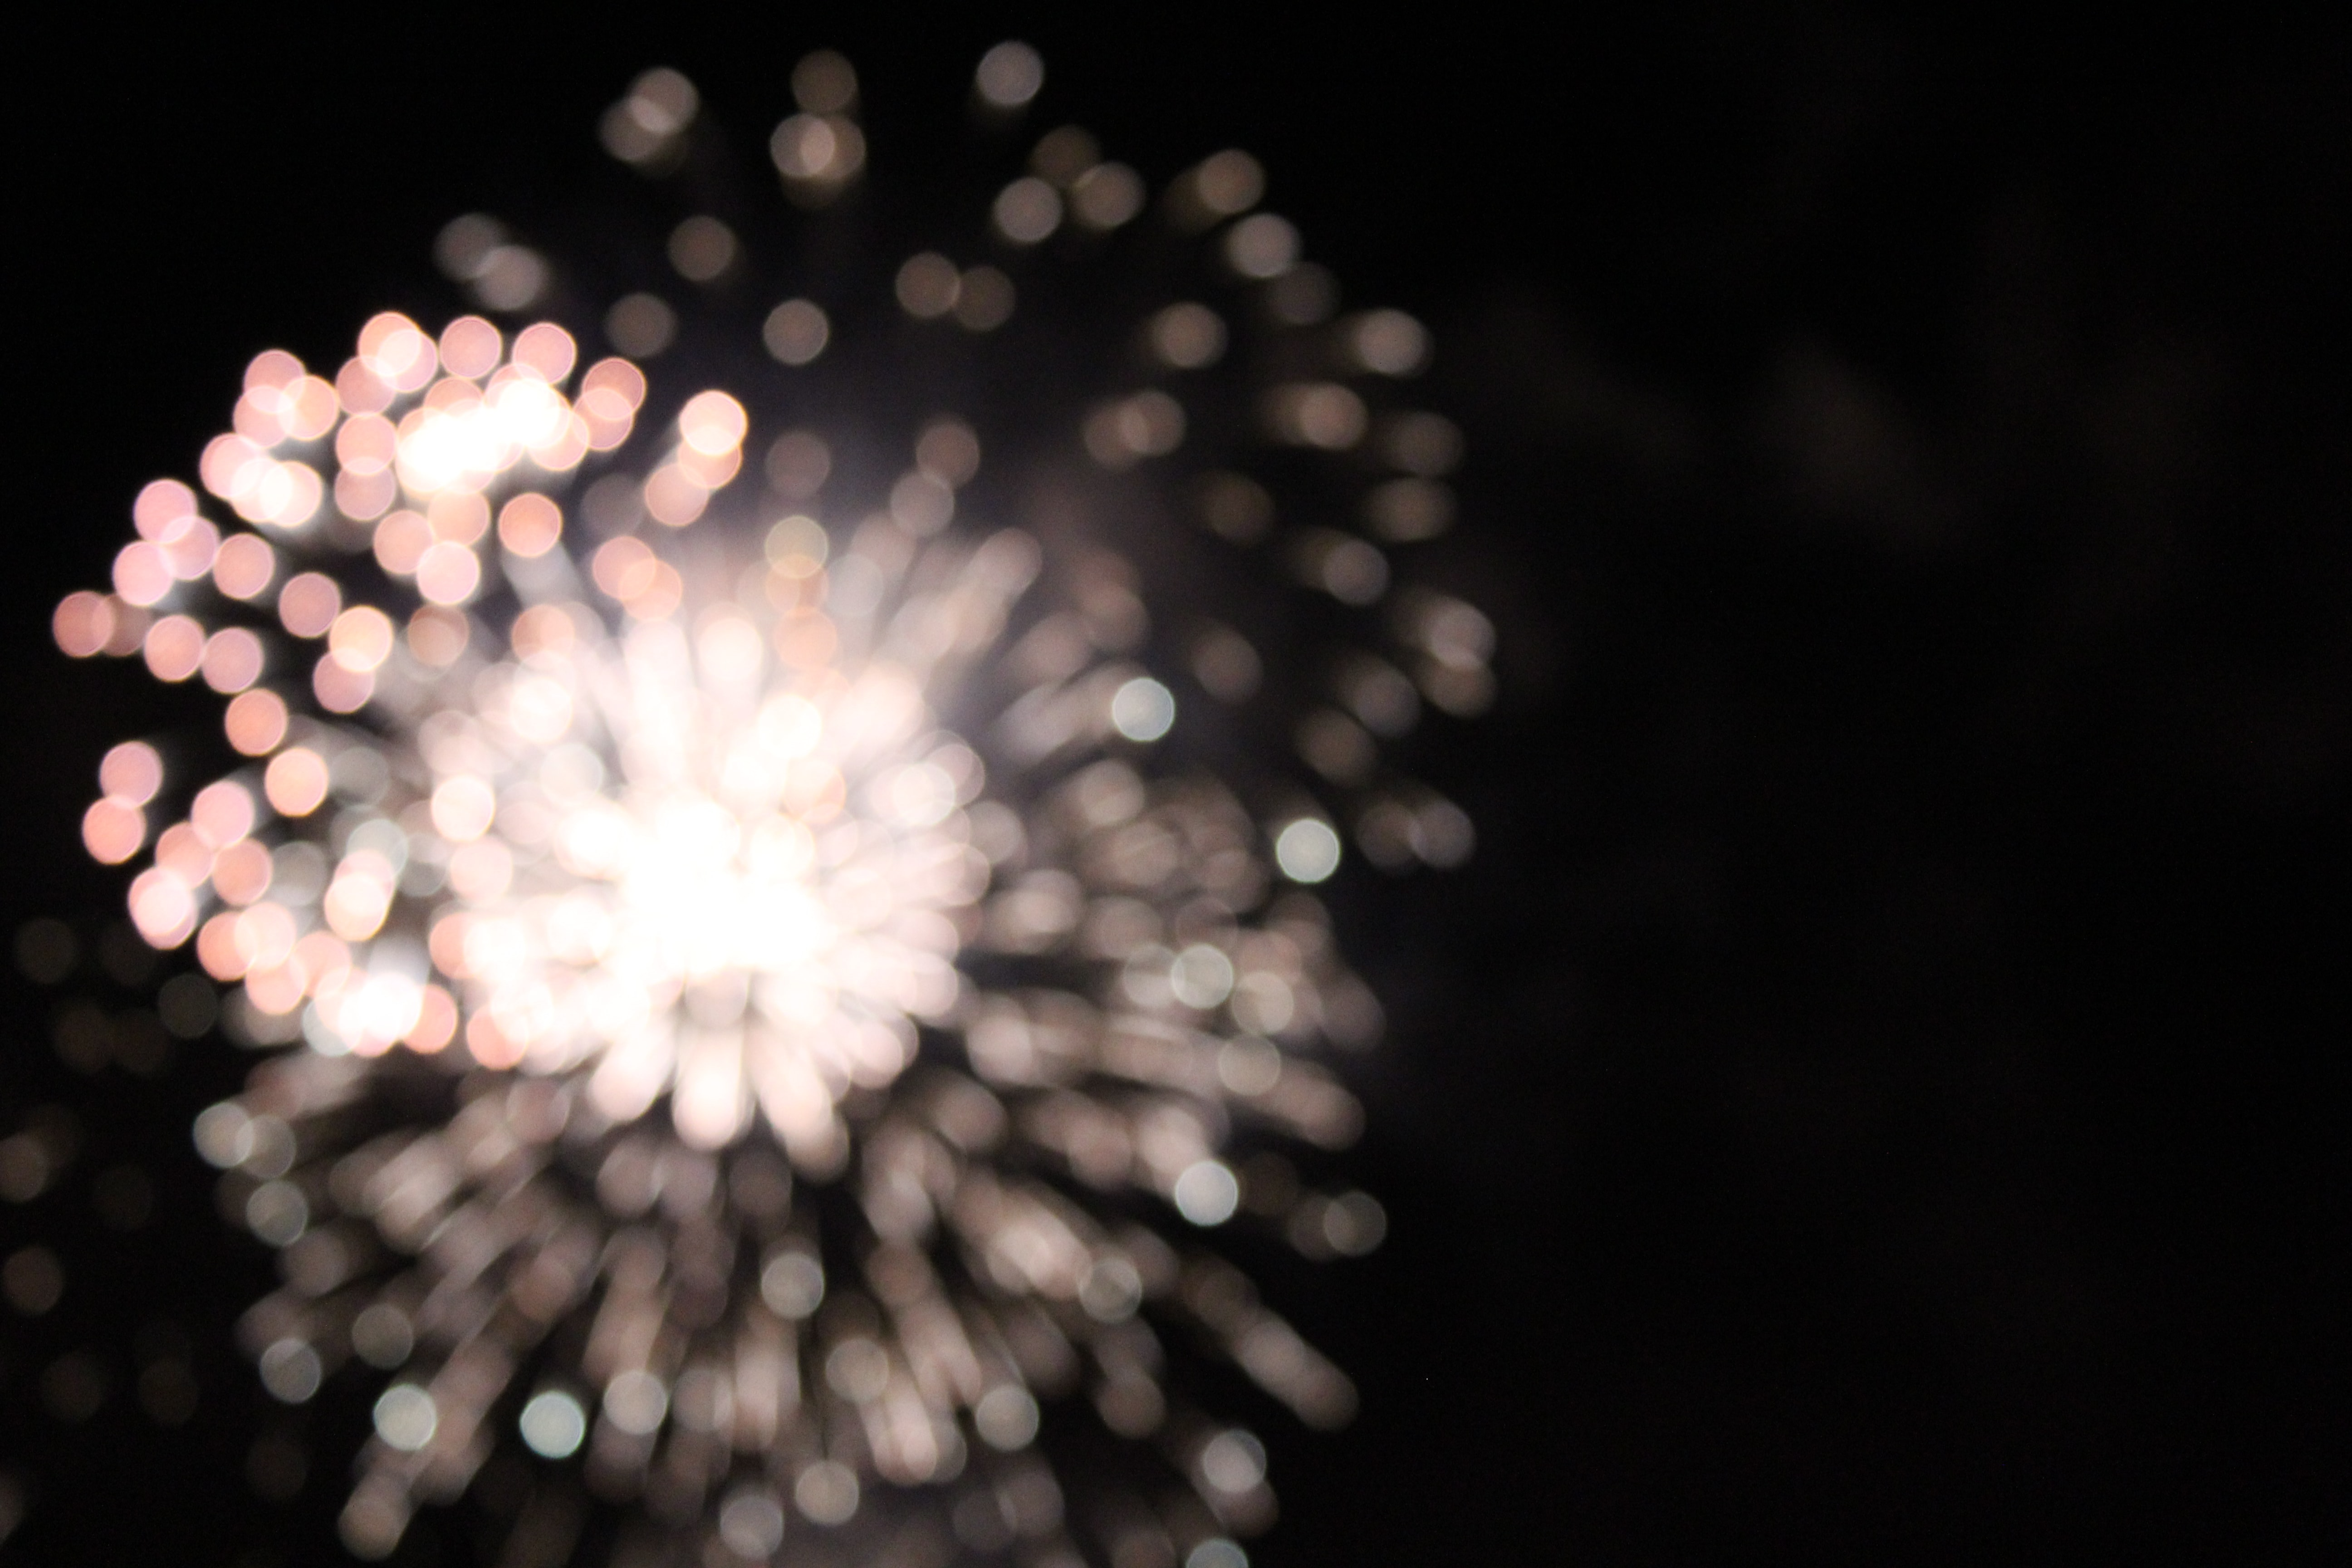 Out of focus firework in mid-explosion at night